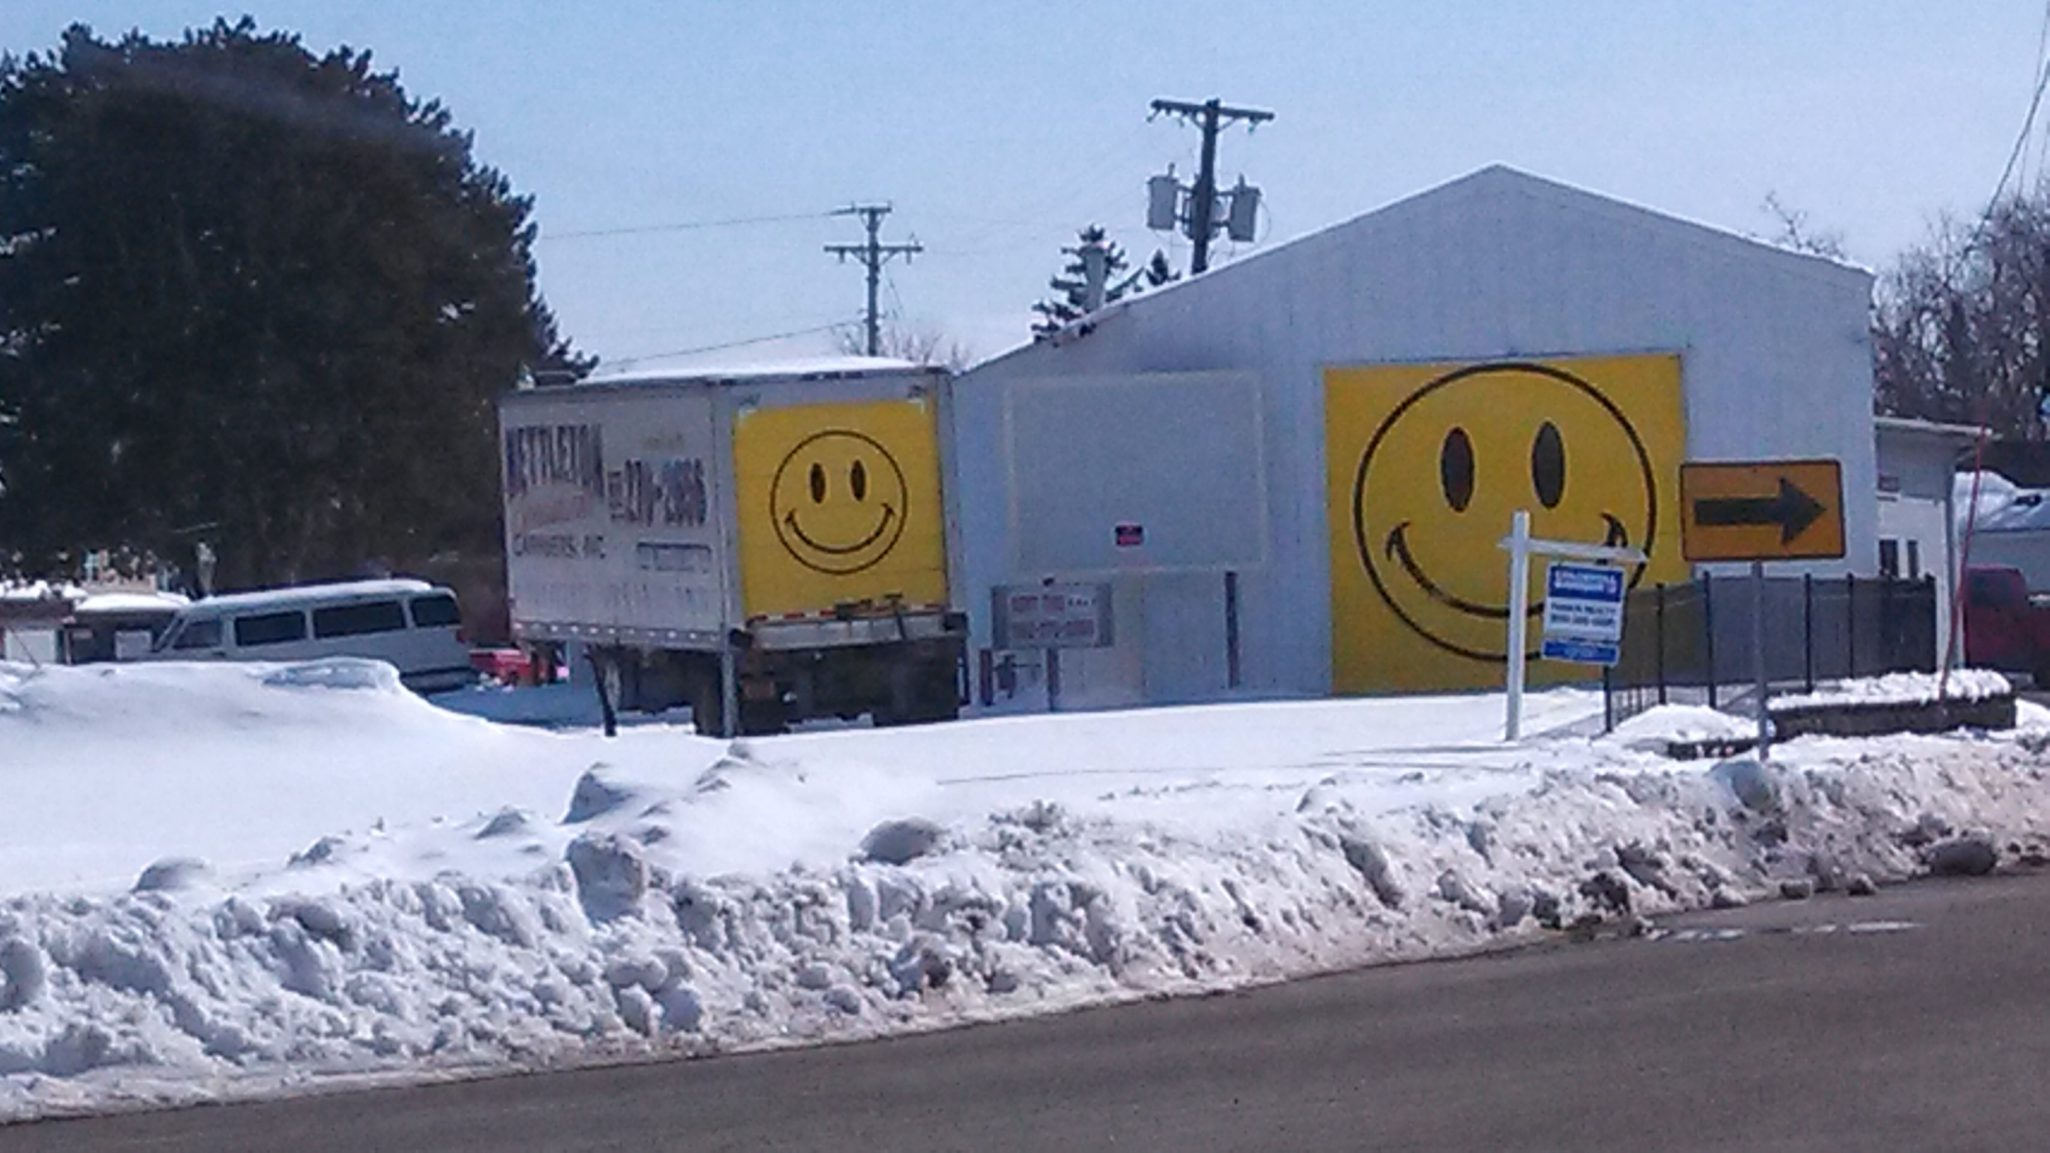 Happiness For Sale?